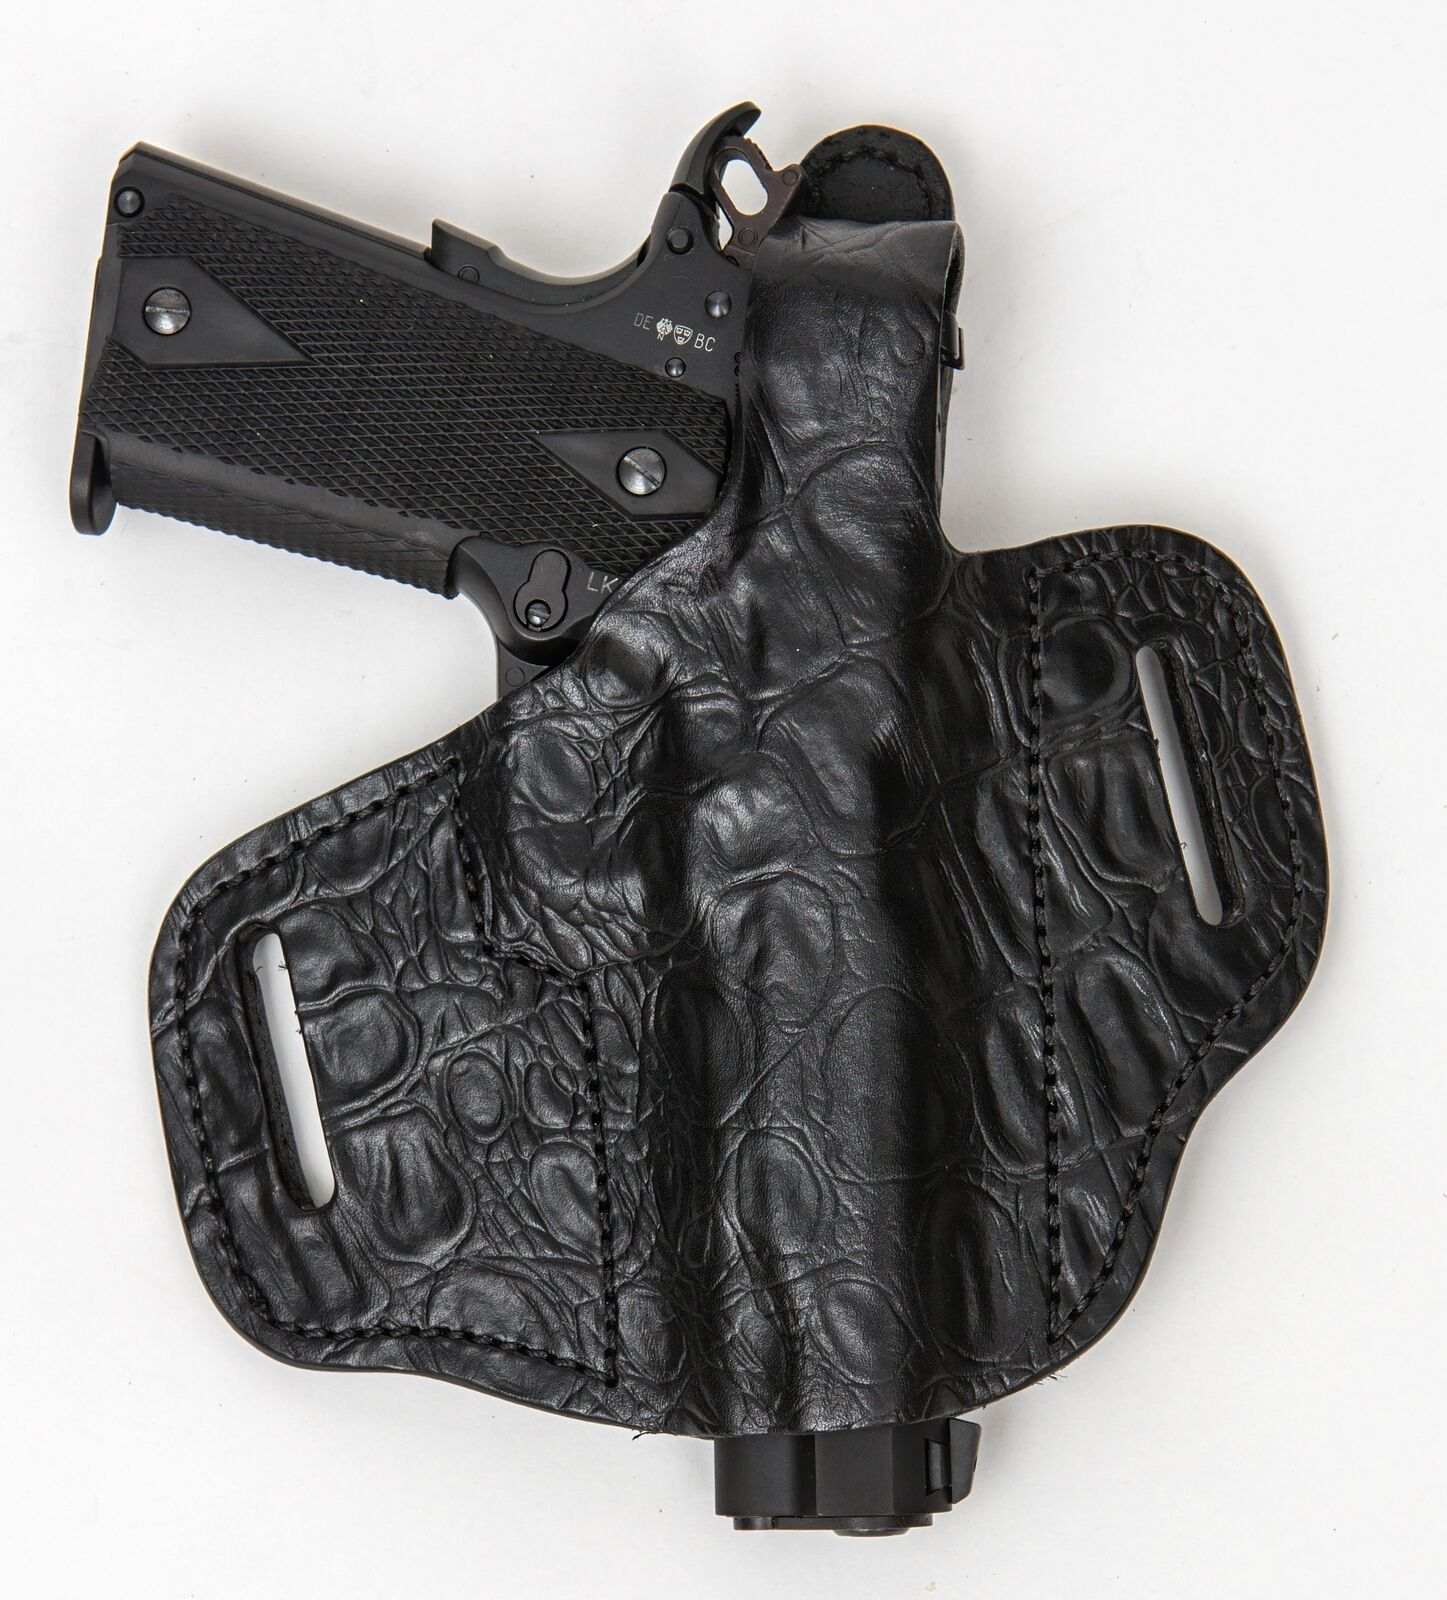 On Duty Conceal RH LH OWB Leather Gun Holster For Firestorm 9mm